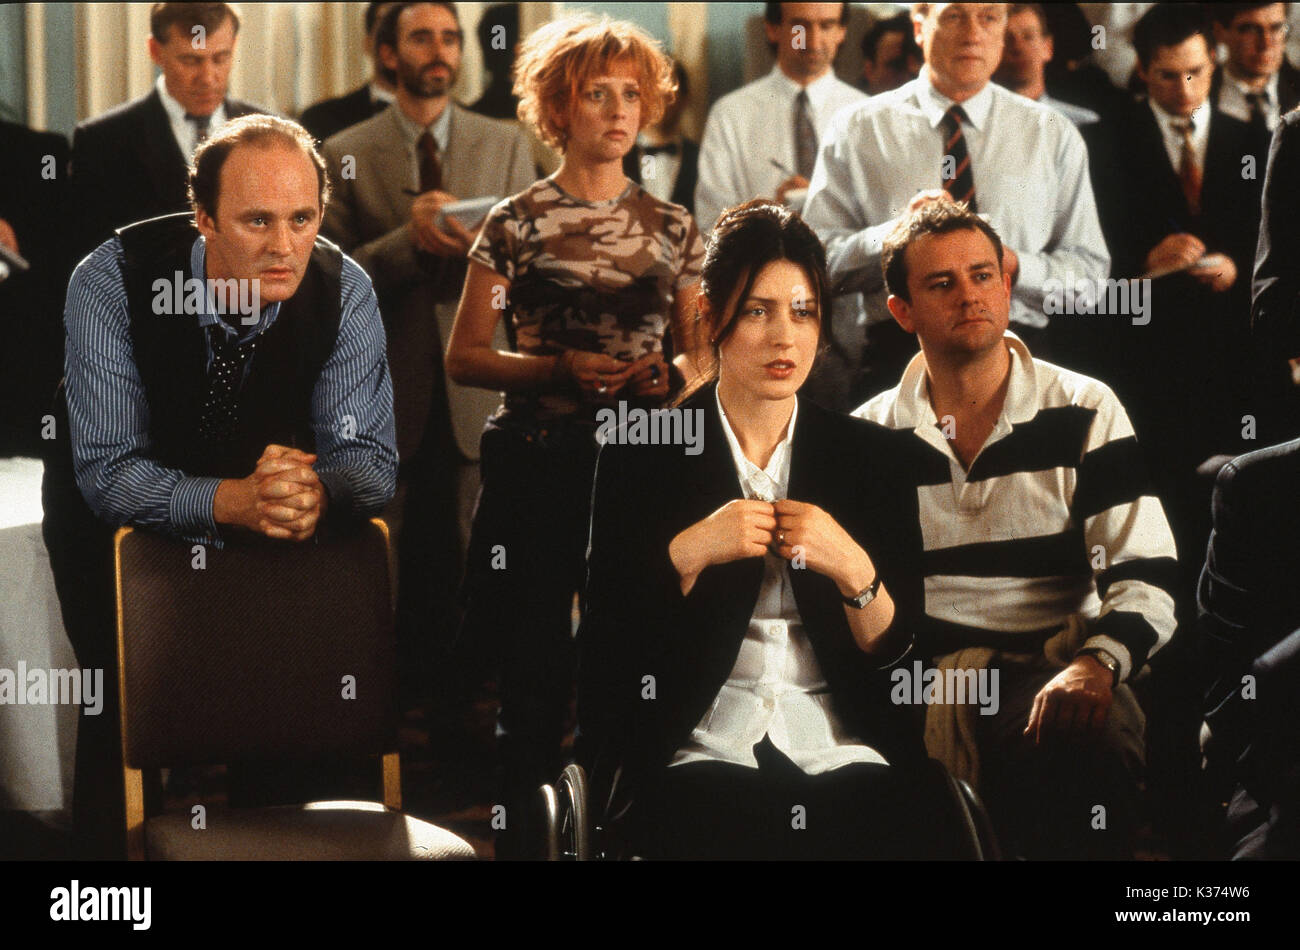 NOTTING HILL L-R, TIM McINNERNY, EMMA CHAMBERS, GINA McKEE AND HUGH BONNEVILLE A WORKING TITLE FILM - Stock Image